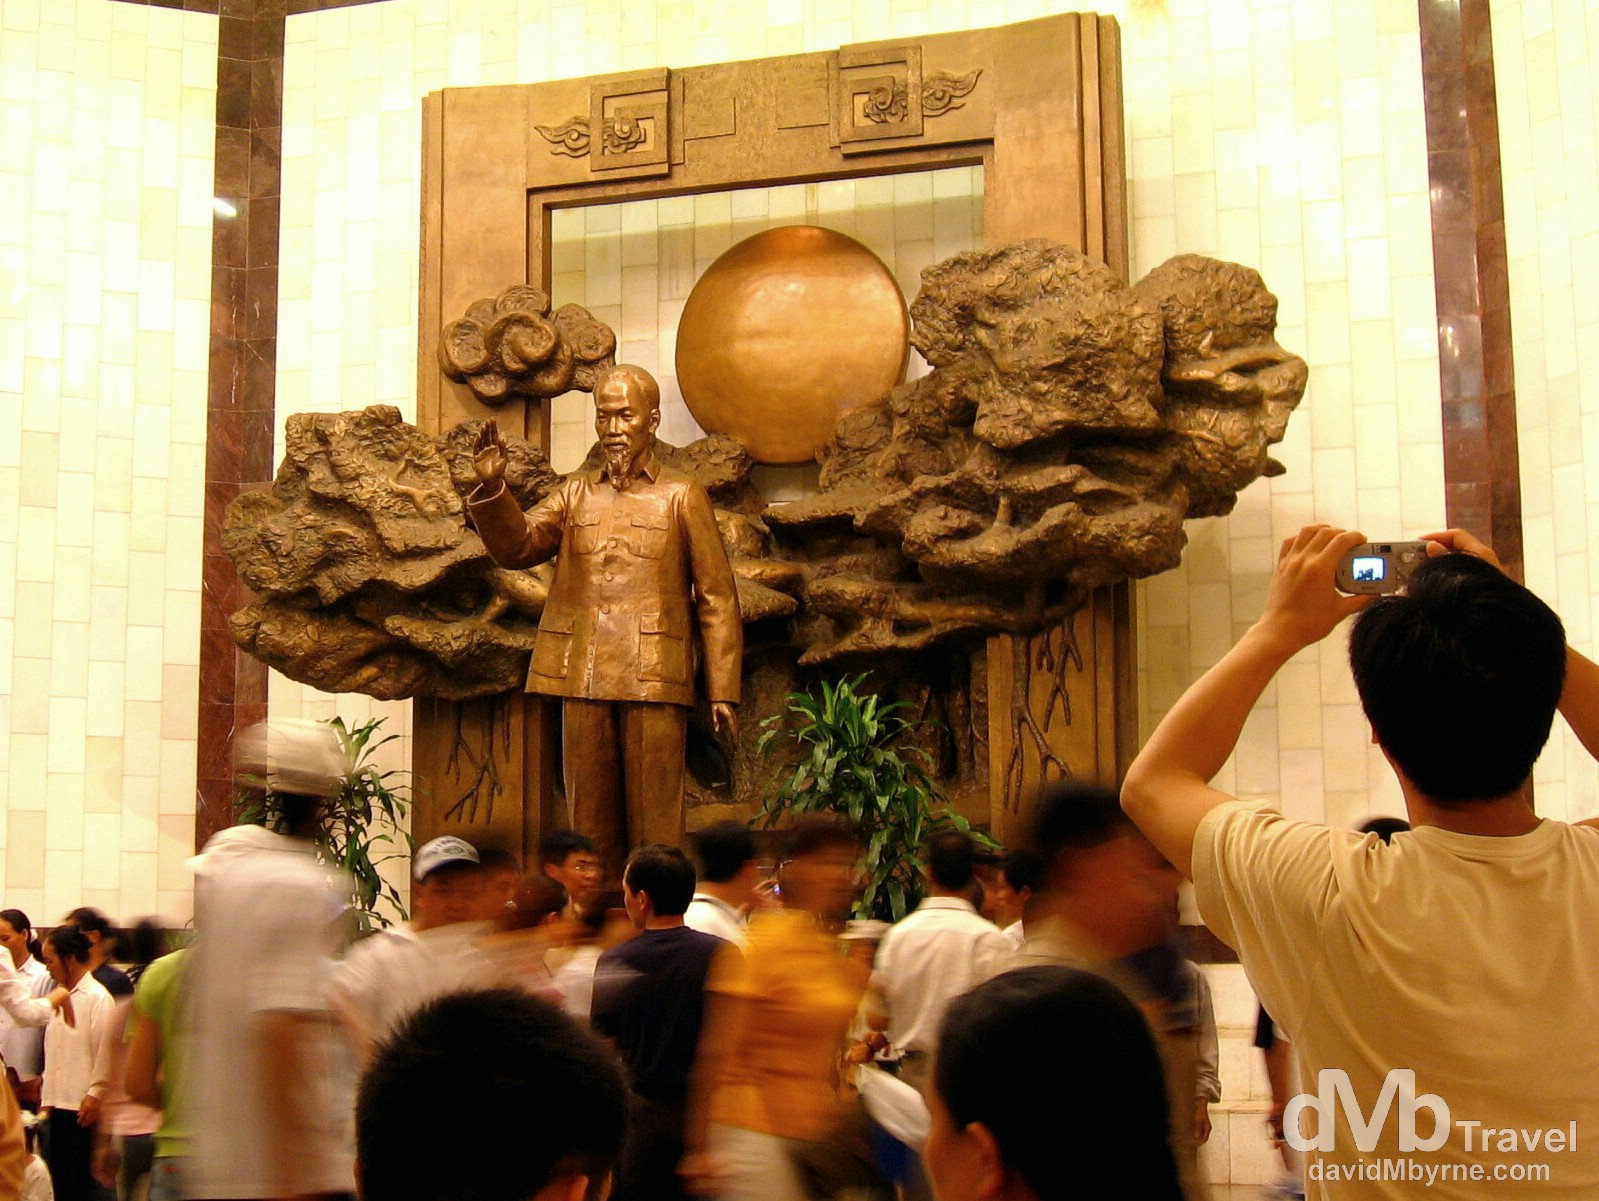 The lobby of the Ho Chi Minh Museum in Hanoi, Vietnam. September 6th, 2005.